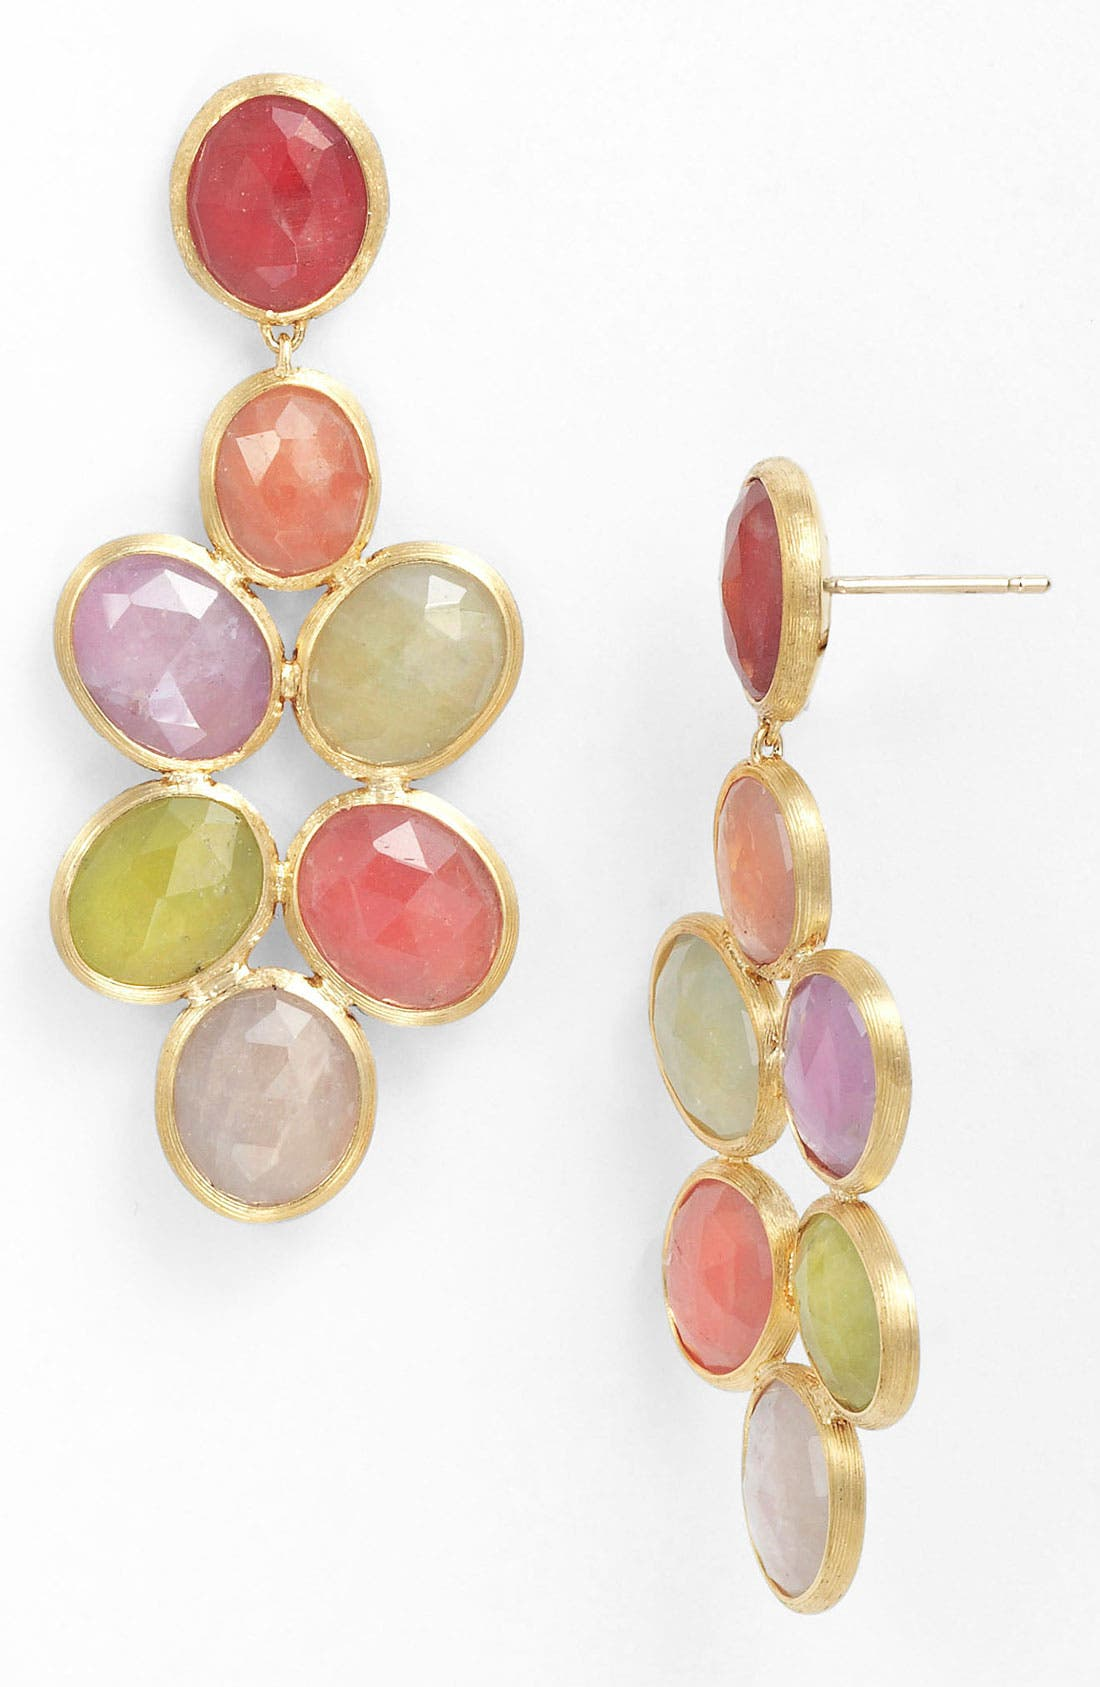 Main Image - Marco Bicego 'Siviglia' Cluster Drop Earrings